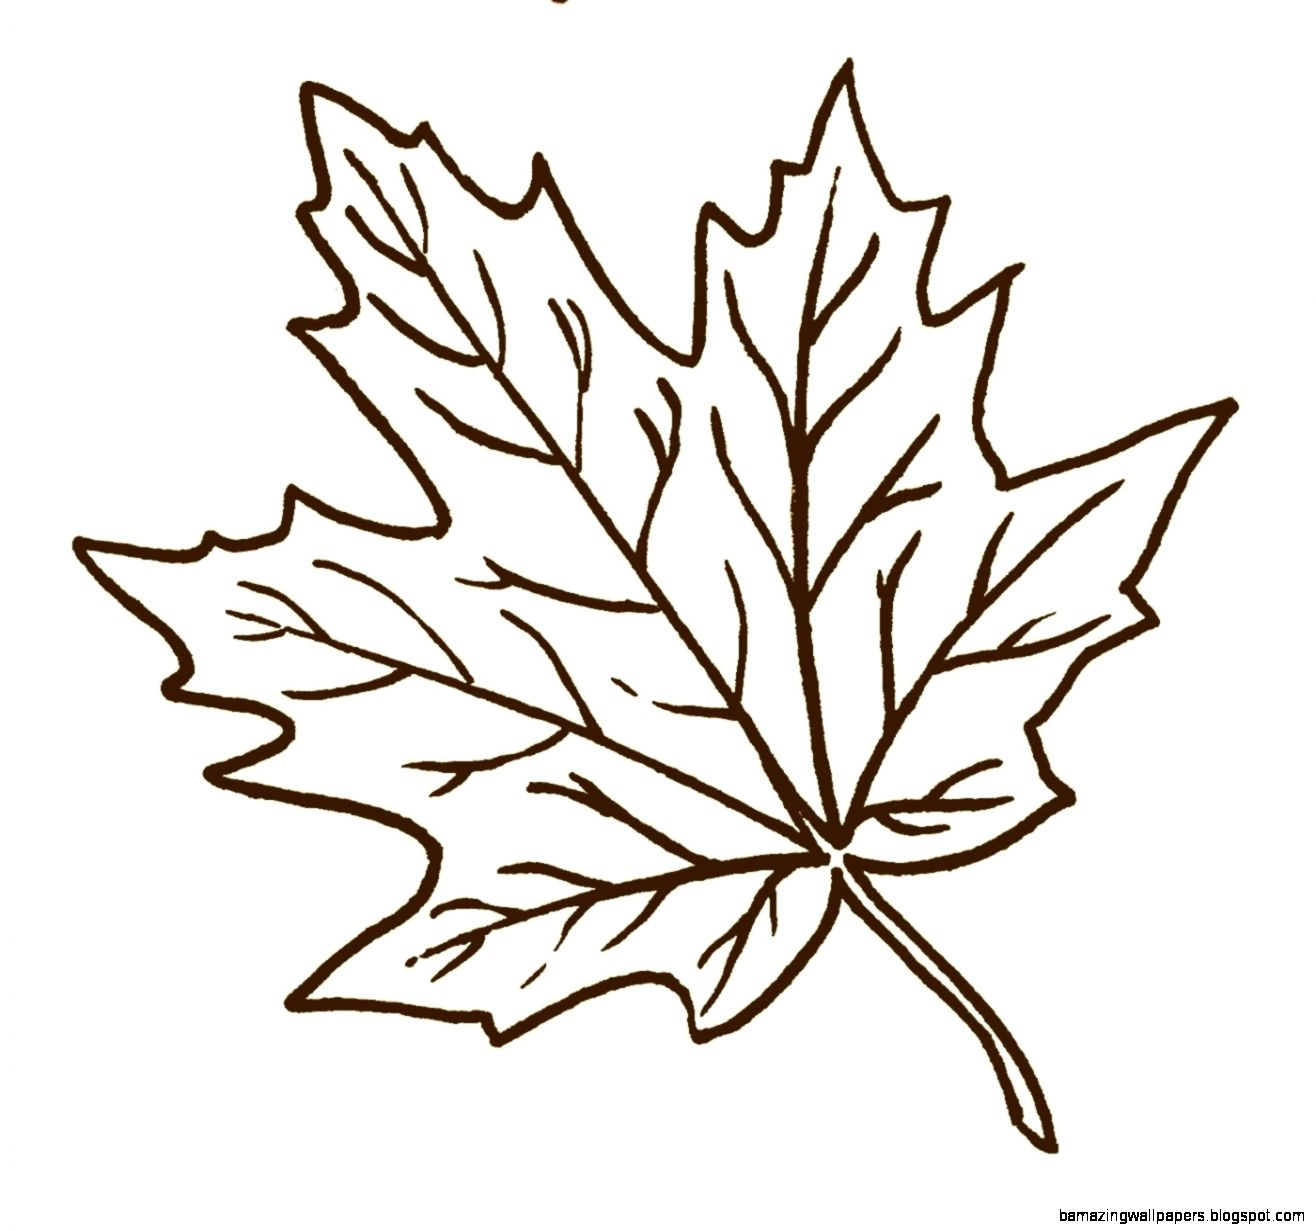 Autumn Borders Black And White Clipart   Clipart Kid